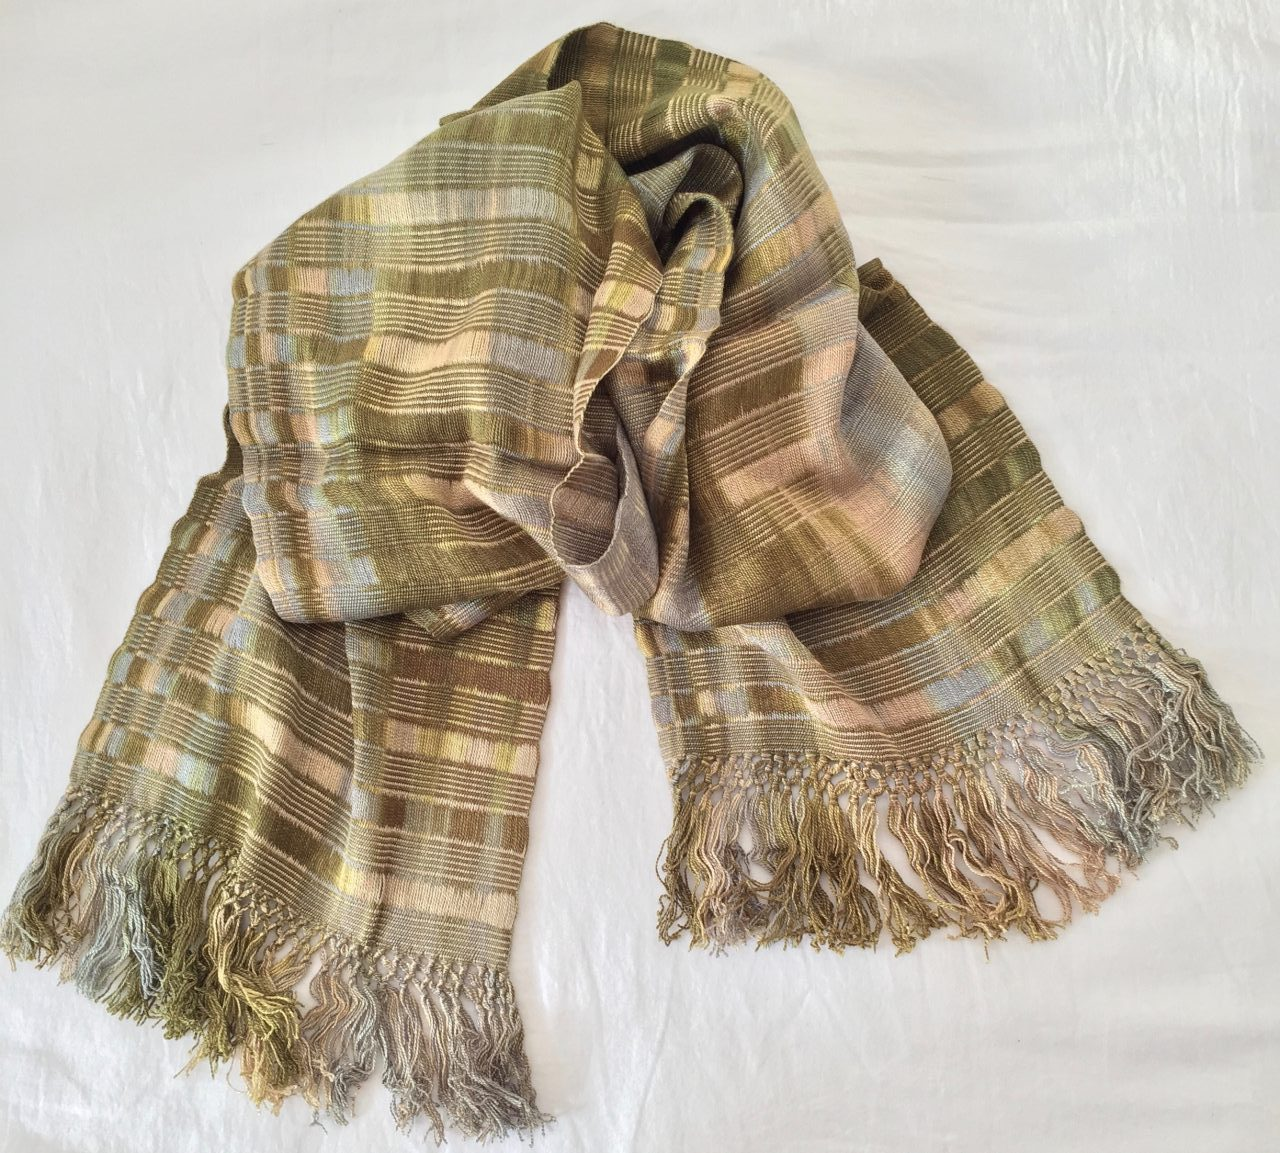 Beige, Olive -  Lightweight Bamboo Open-Weave Handwoven Scarf 8 x 68